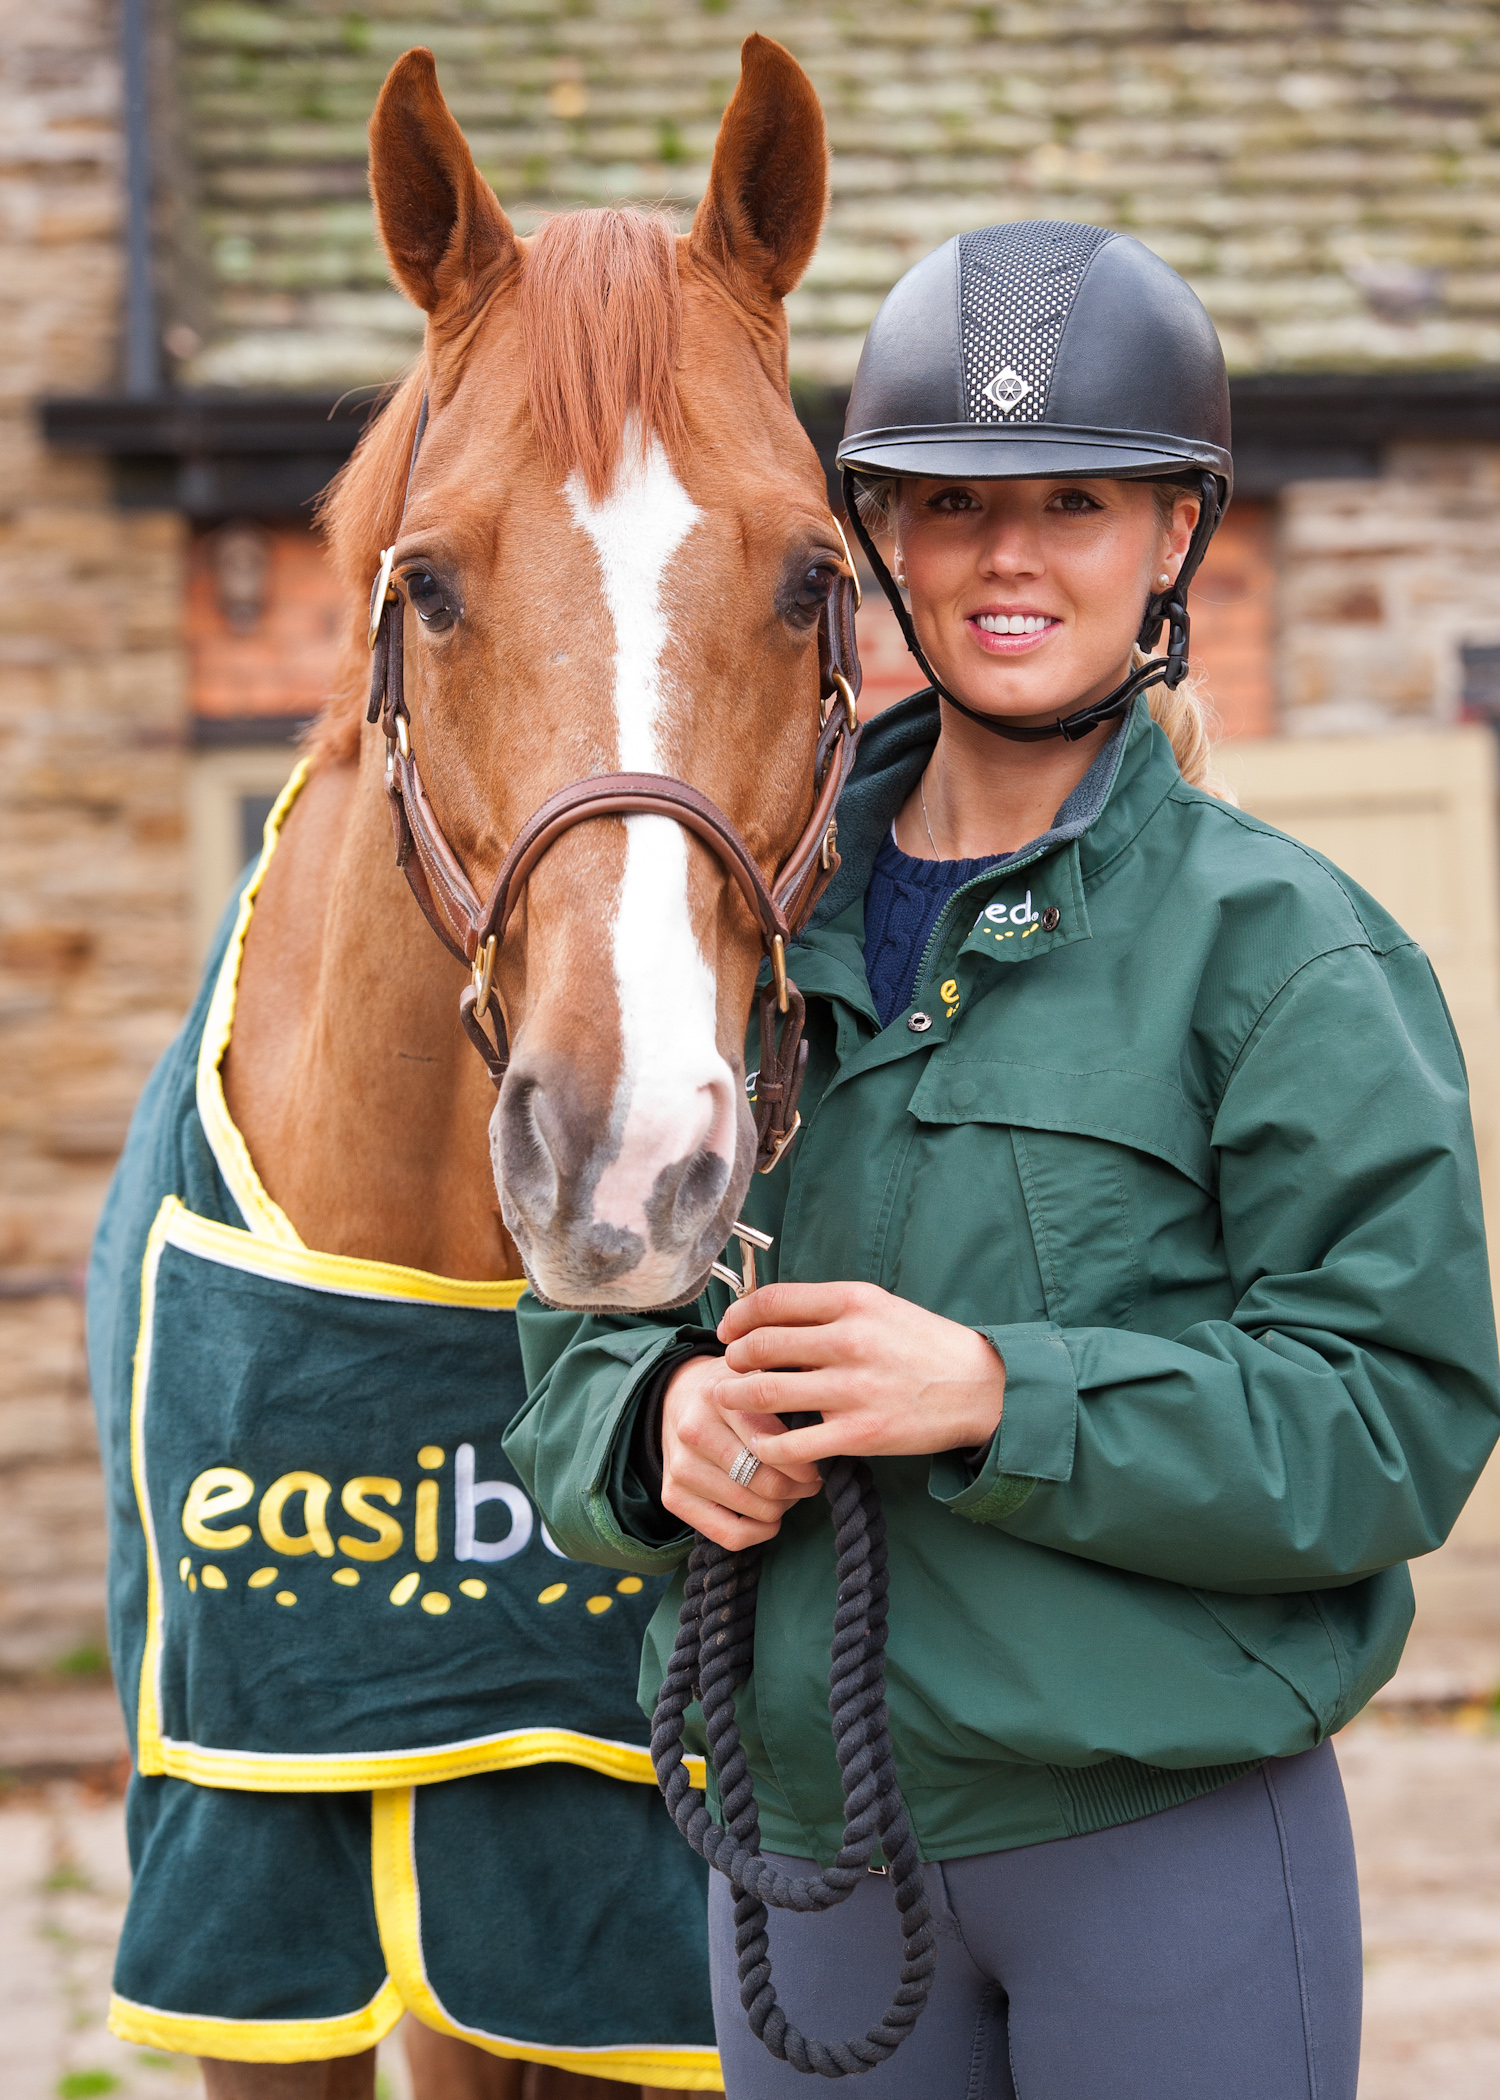 Ellen Whitaker sponsored easibed rider